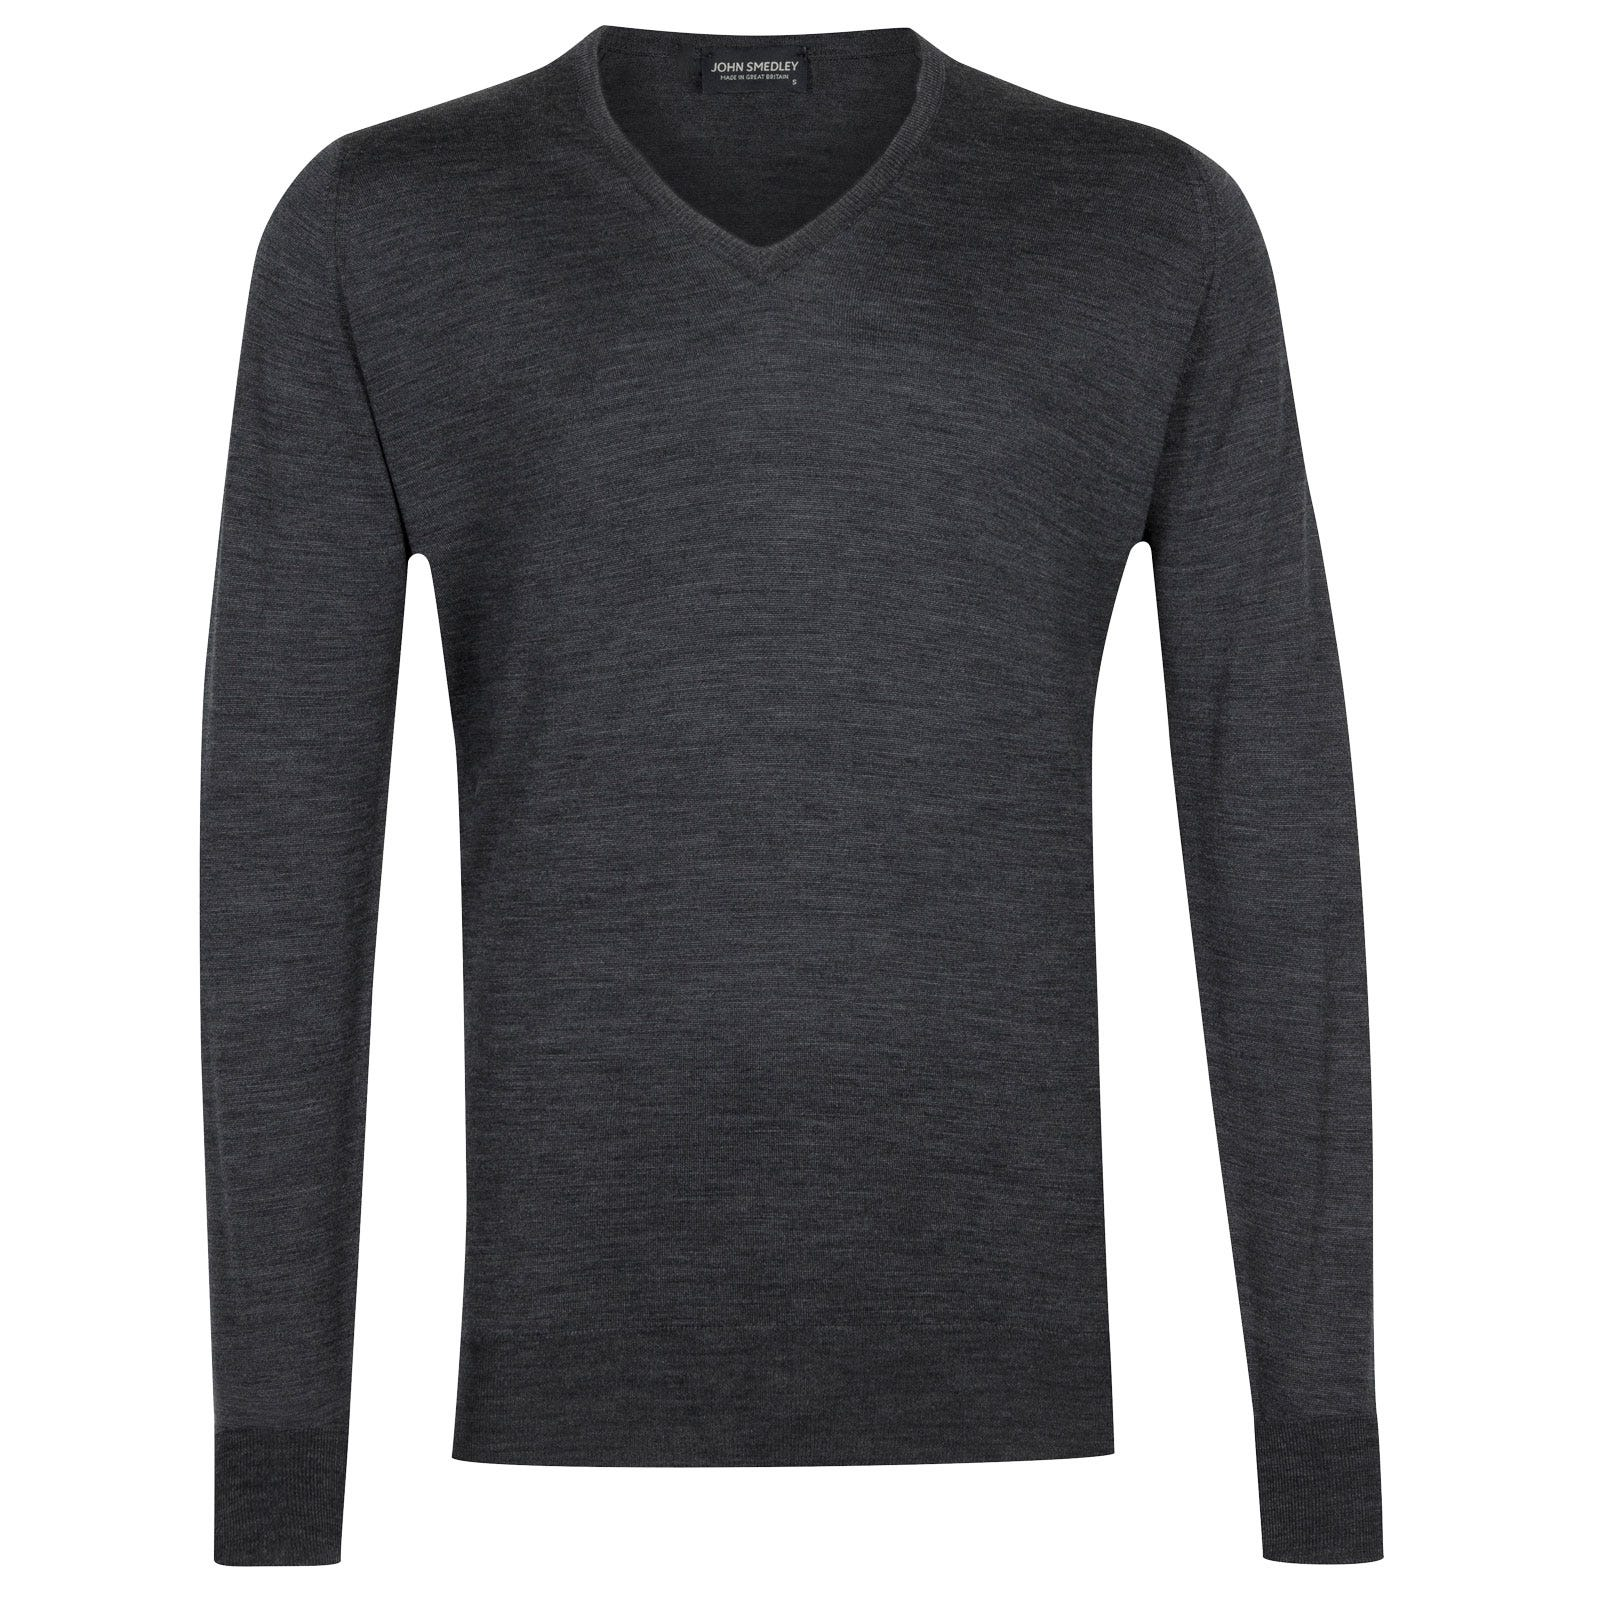 John Smedley bobby Merino Wool Pullover in Charcoal-L